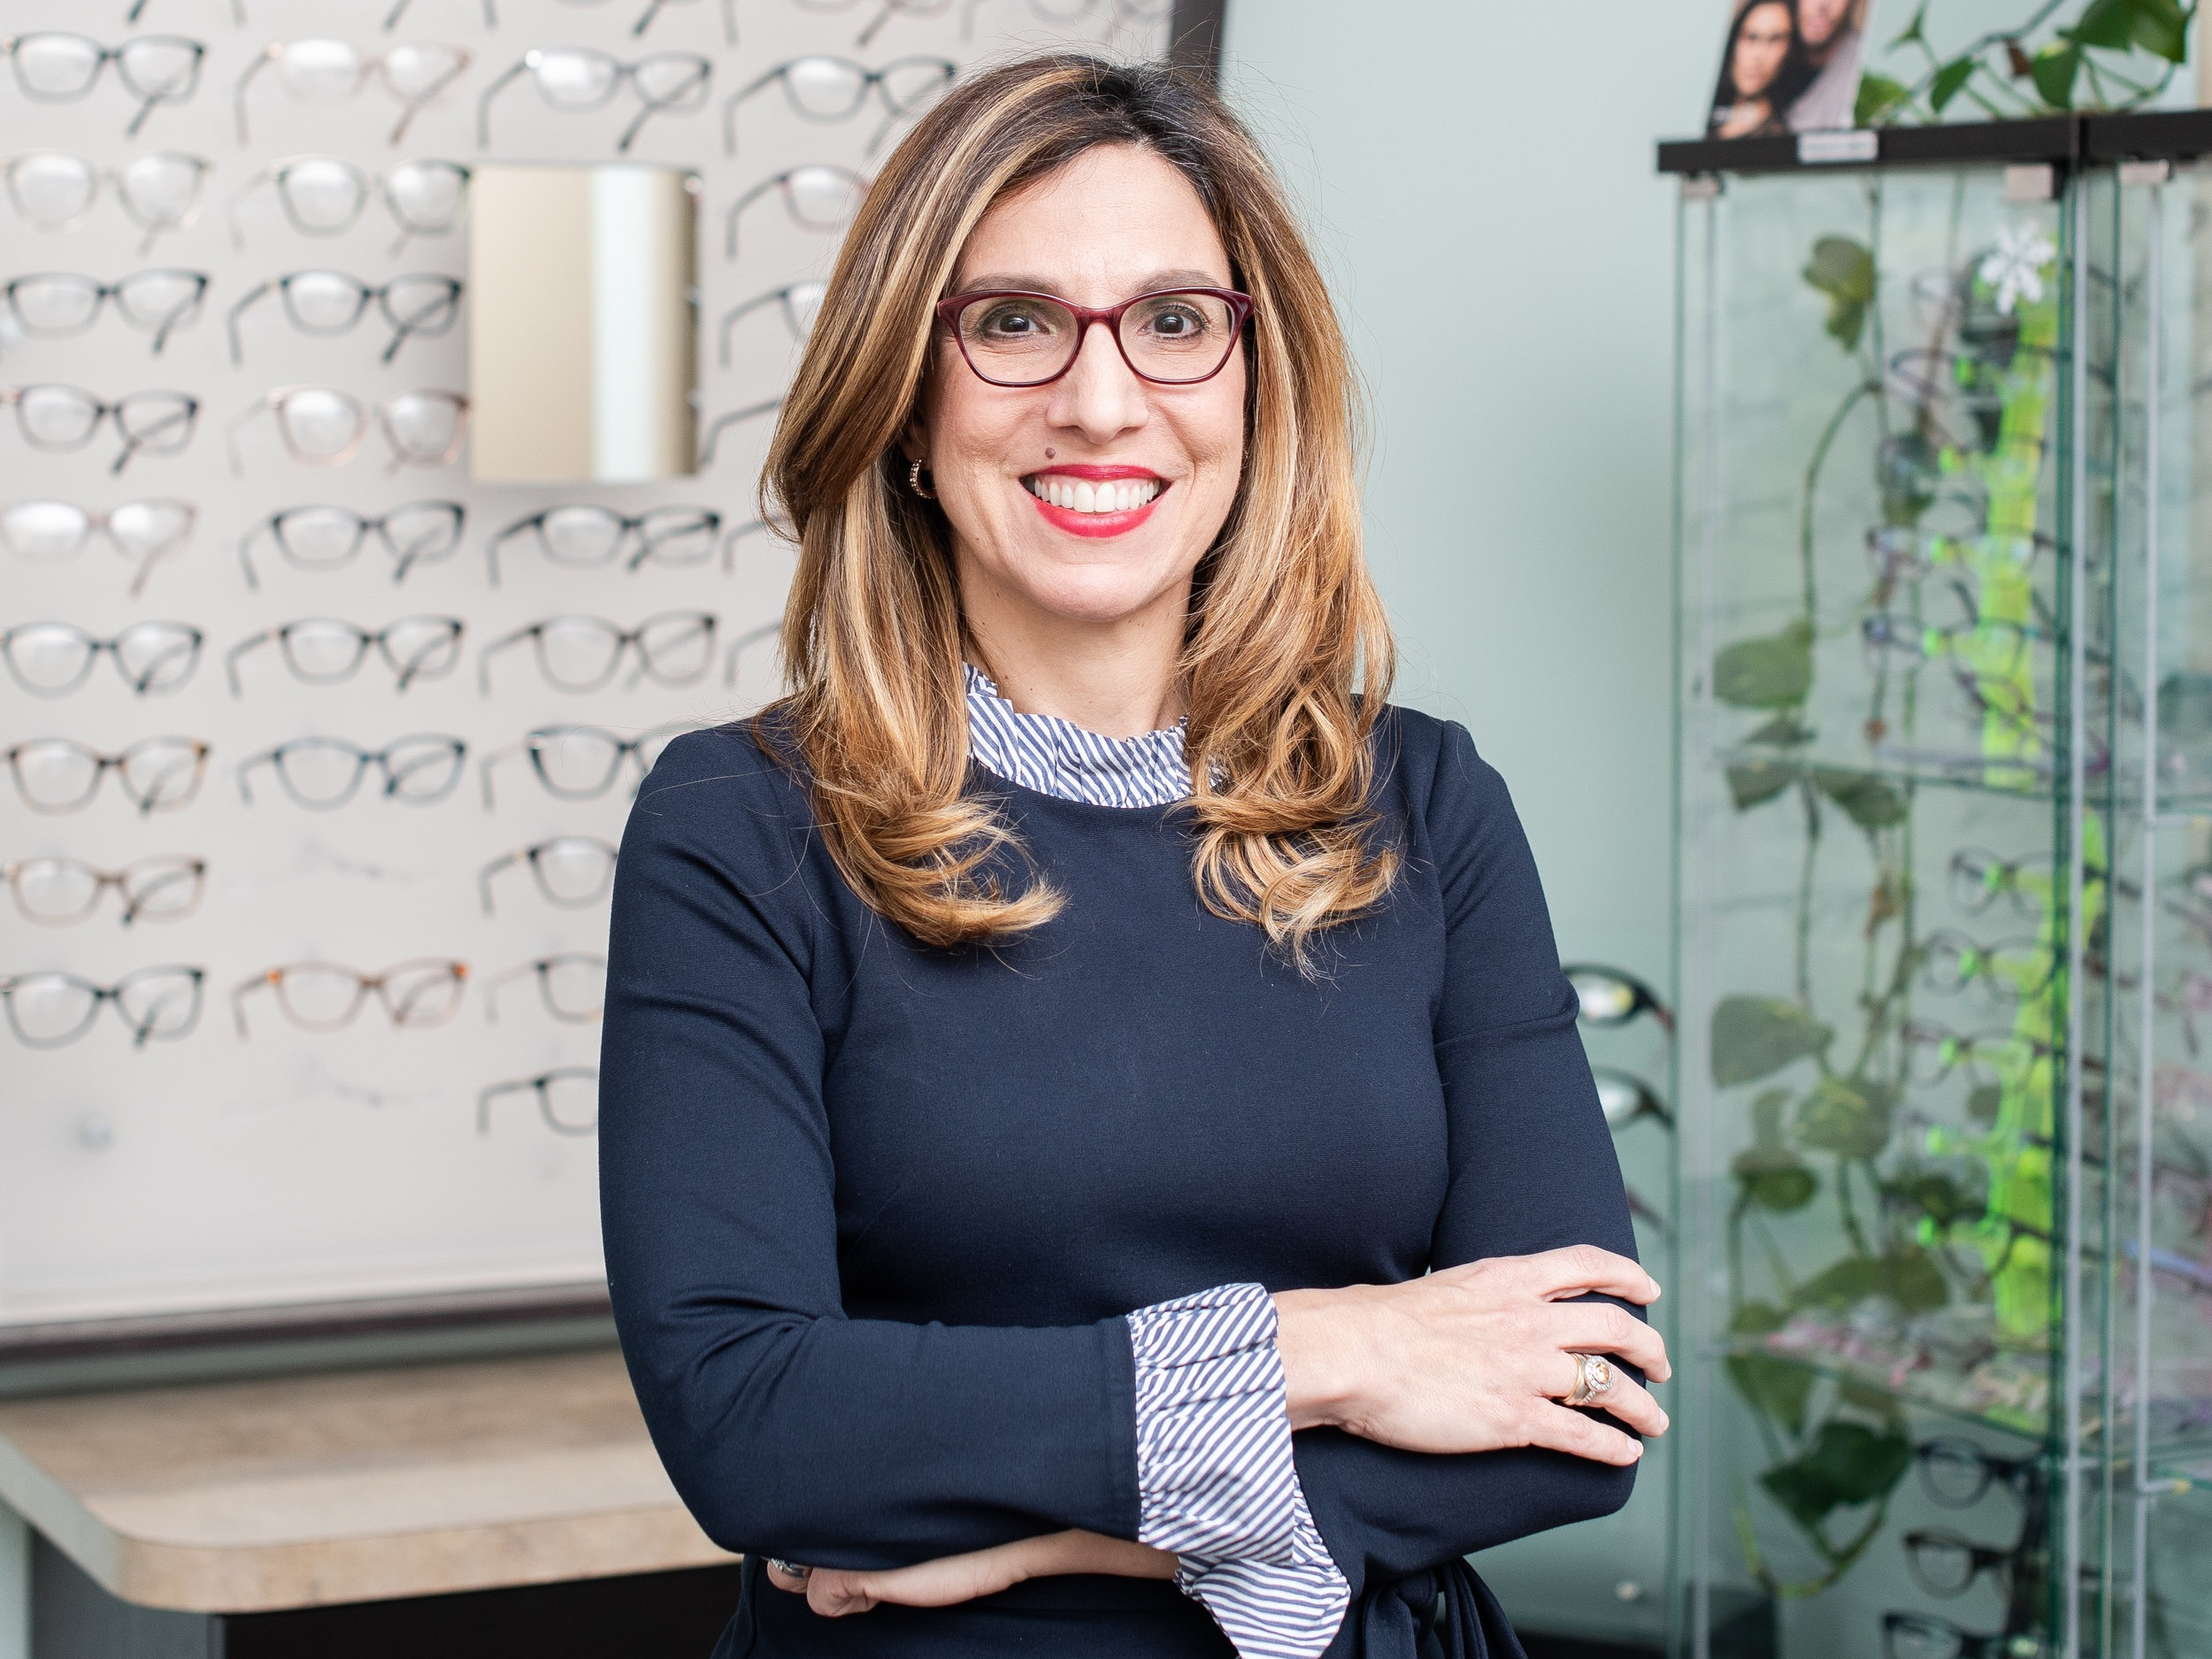 Our Vision: - Vision is a funny thing, we all have it. And our job is to care for it. Eye2eye will always be an accessible eye care practice that embraces technology, forward thinking, preventative care and helps our customers embrace their uniqueness through stylish eyewear.